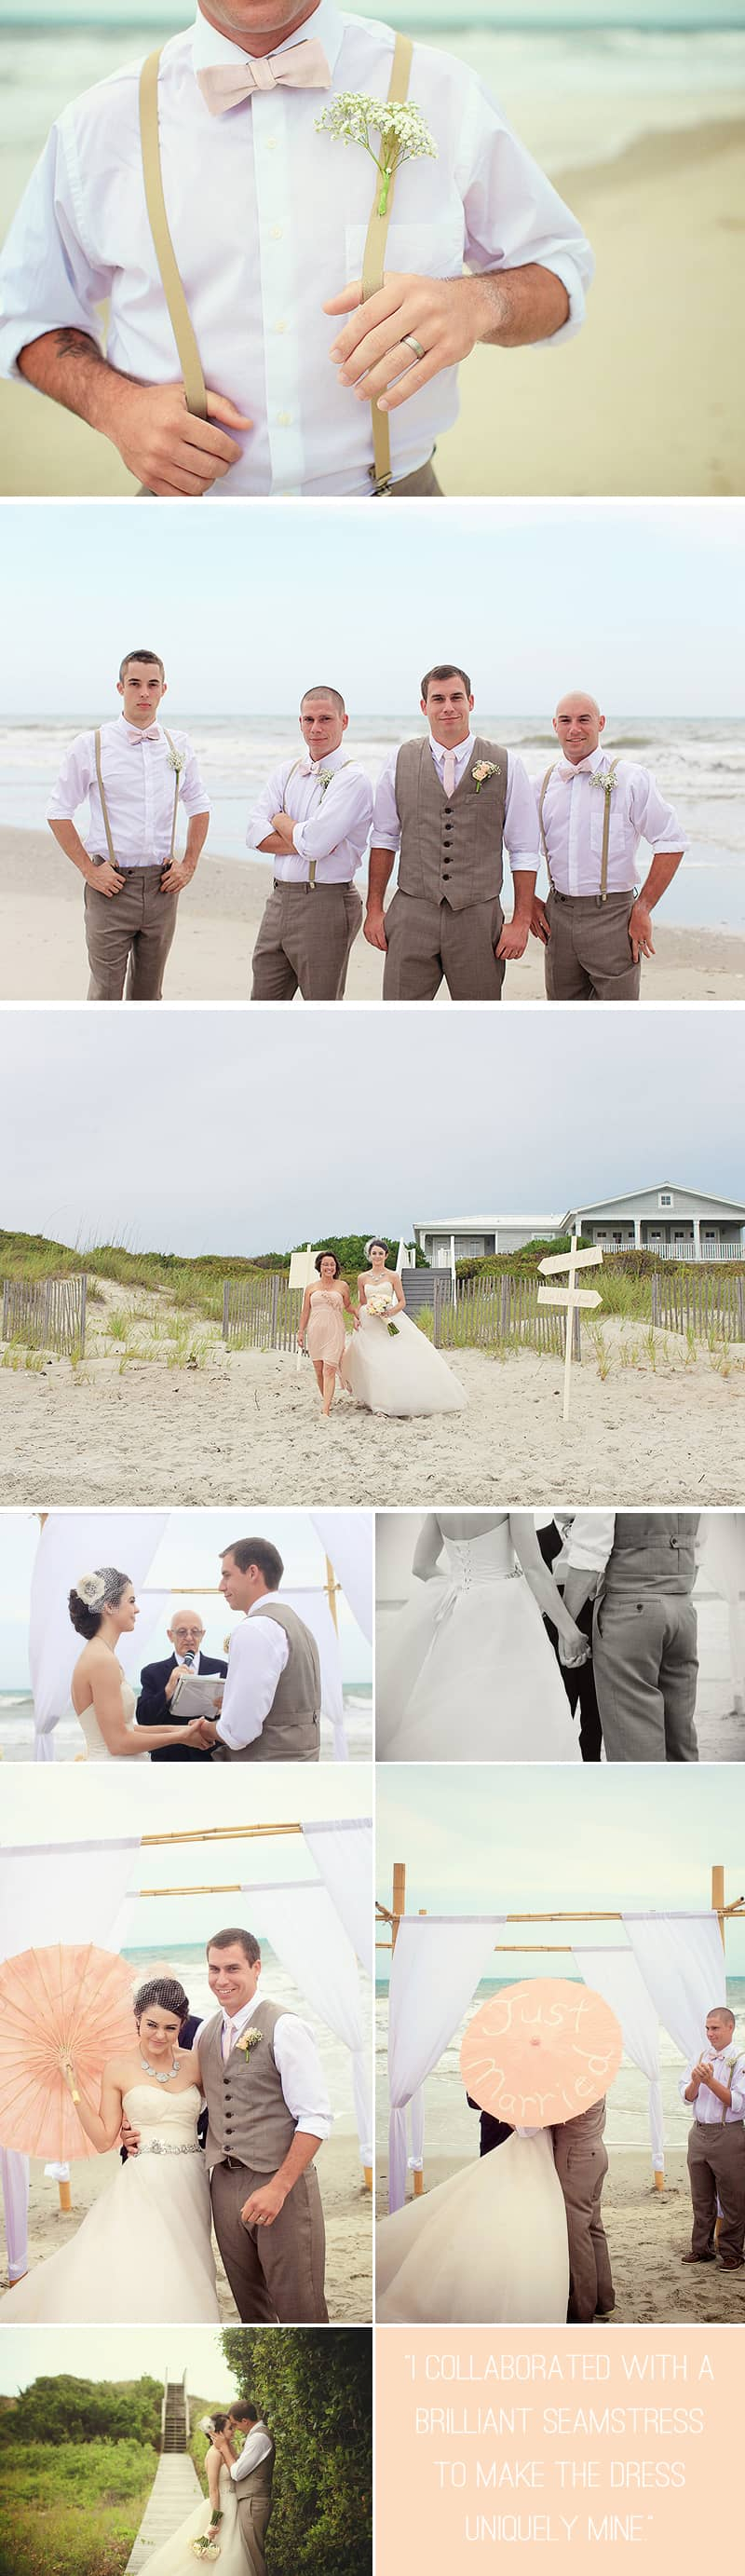 An Intimate Beach Wedding 1